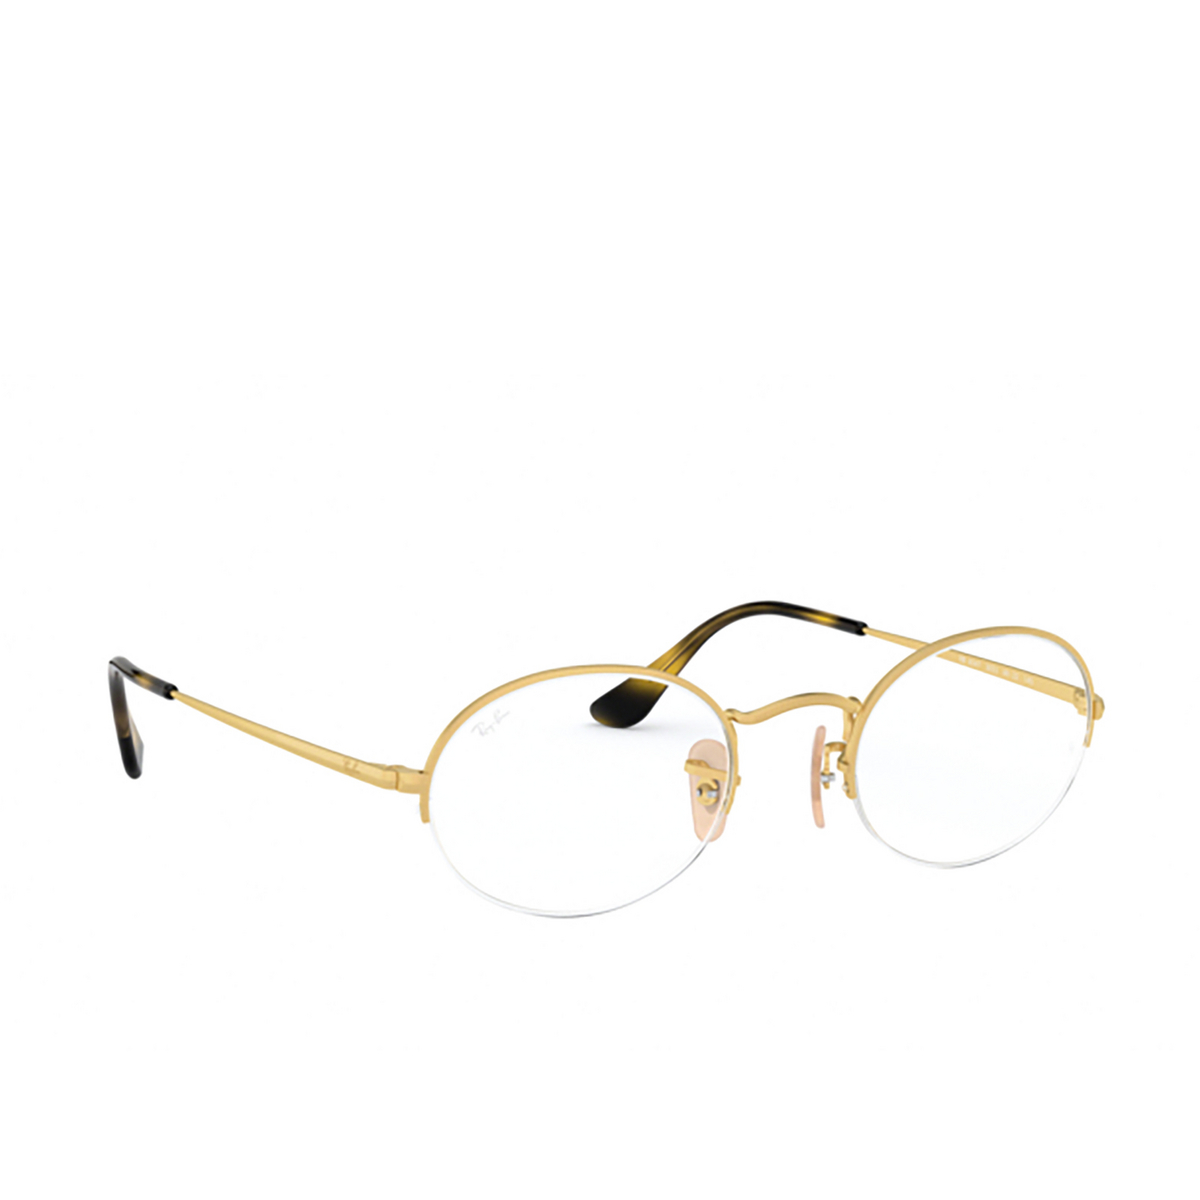 Ray-Ban® Oval Eyeglasses: Oval Gaze RX6547 color Matte Gold 3033 - three-quarters view.